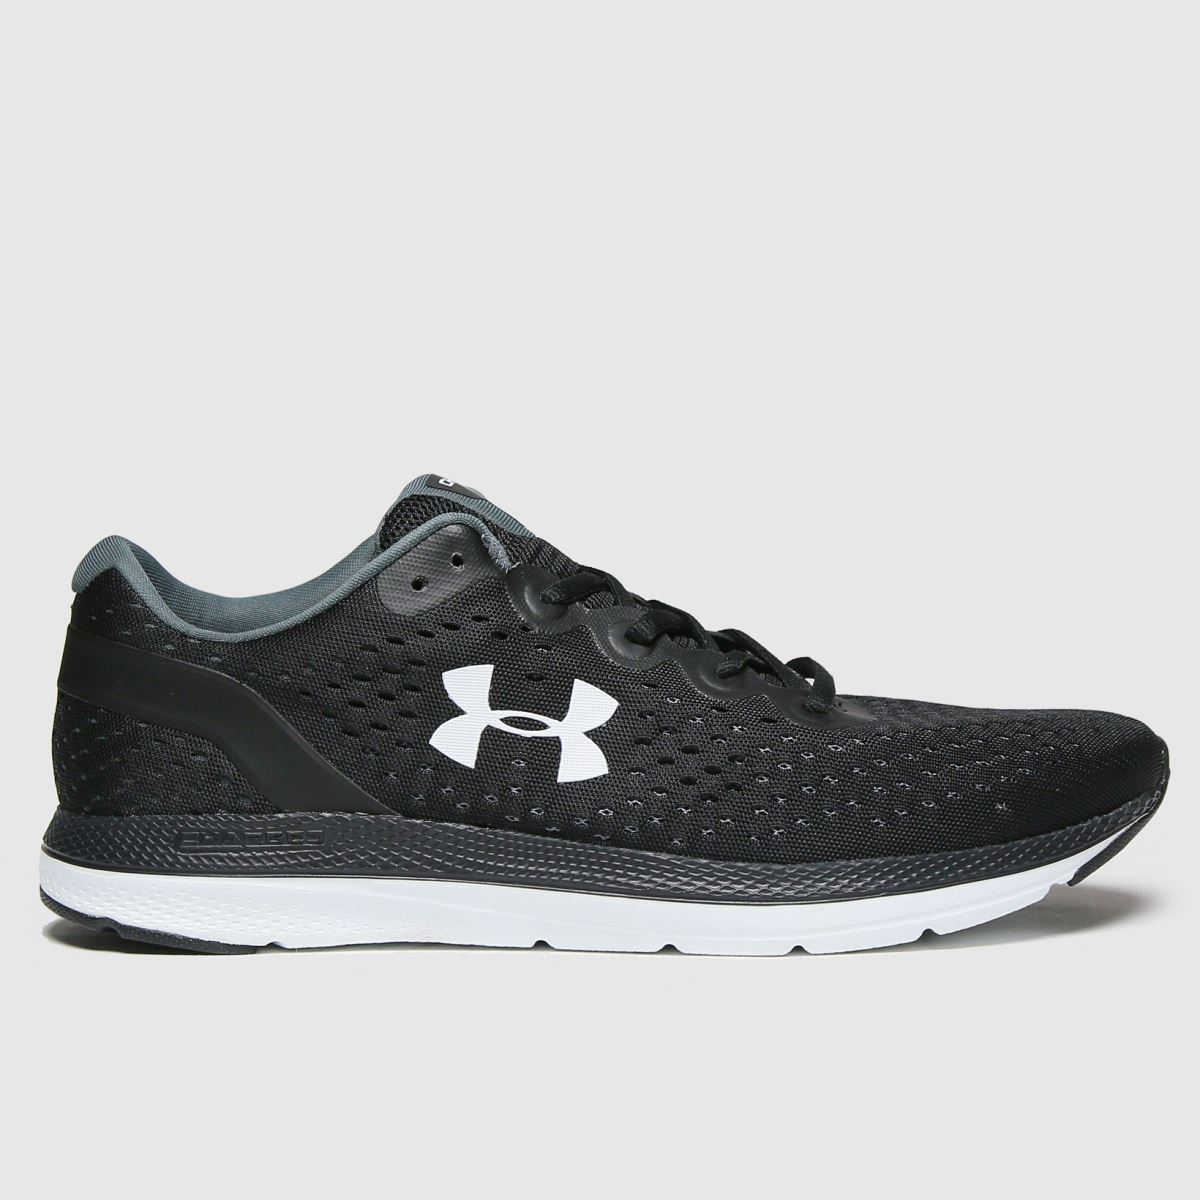 Under Armour Black & White Charged Impulse Trainers